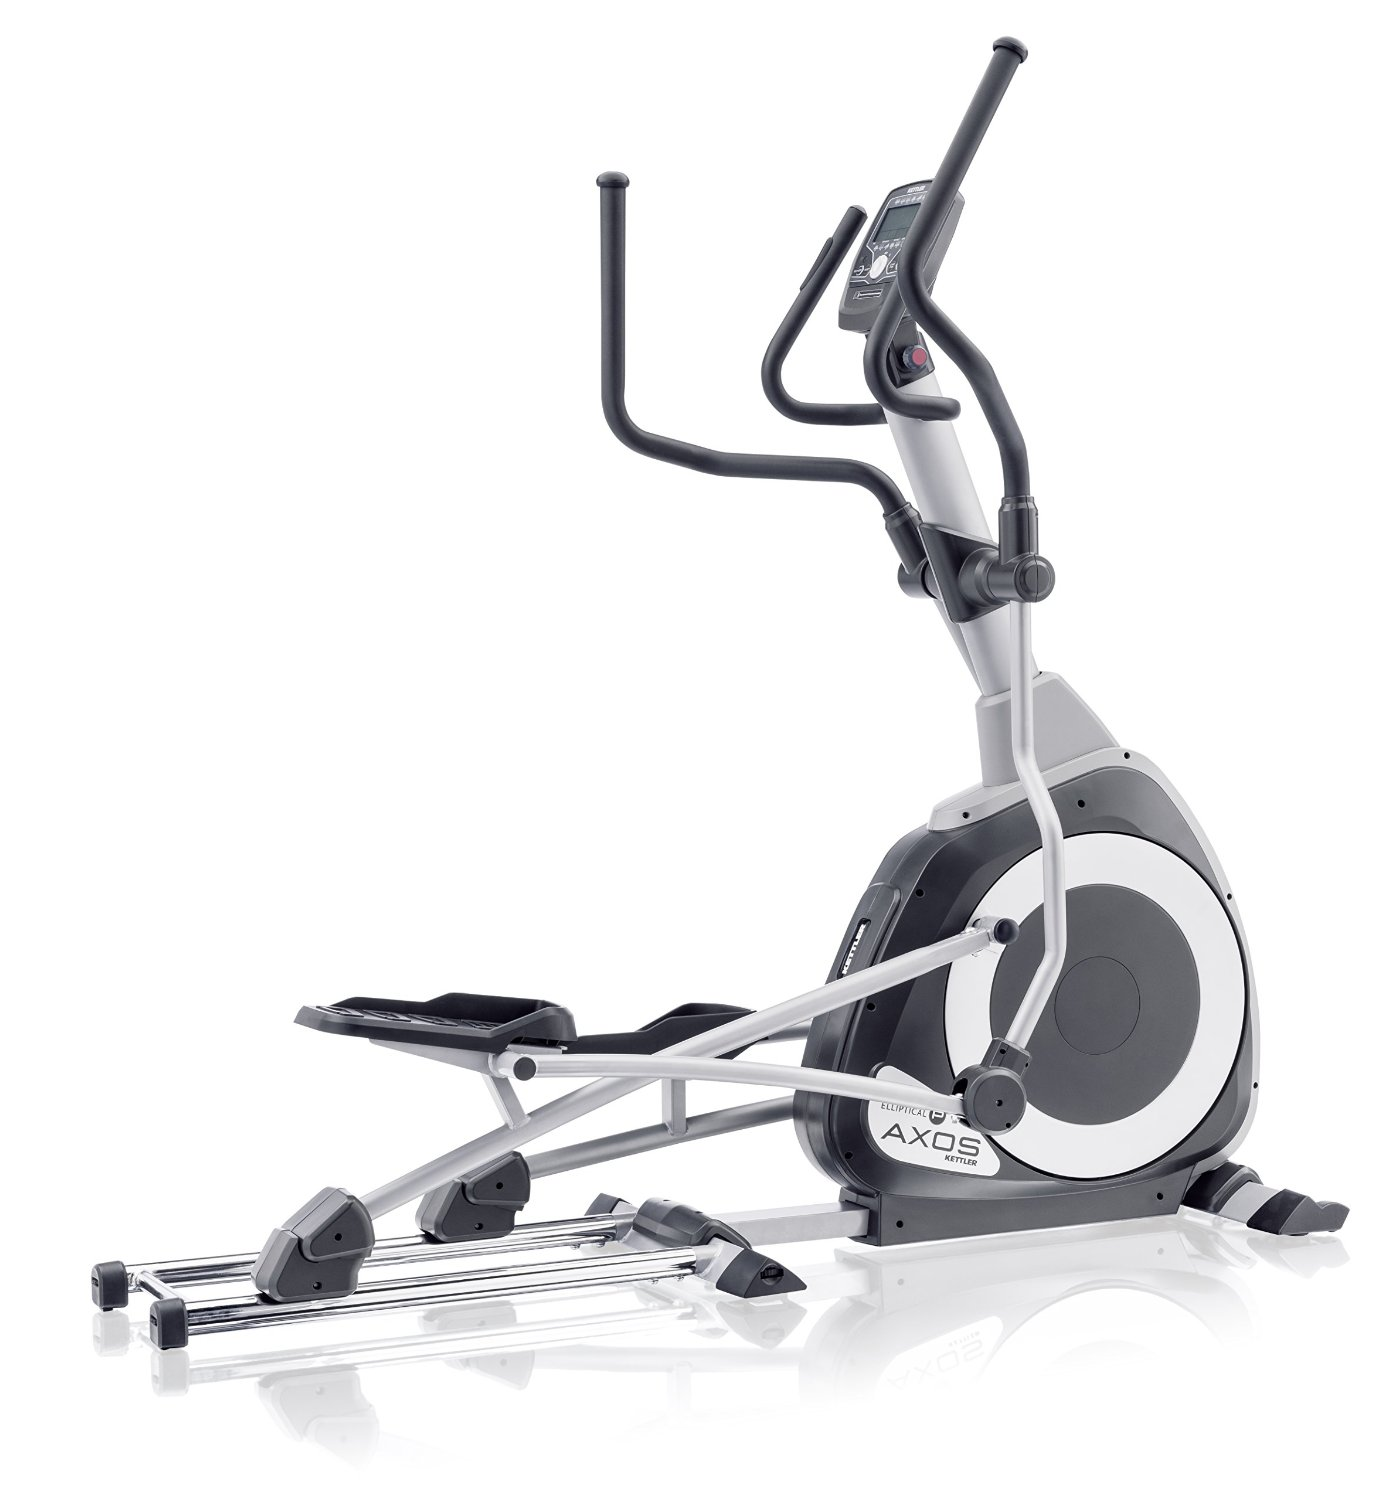 Kettler Fitness Kettler Axos P Elliptical Cross Trainer Review Latest